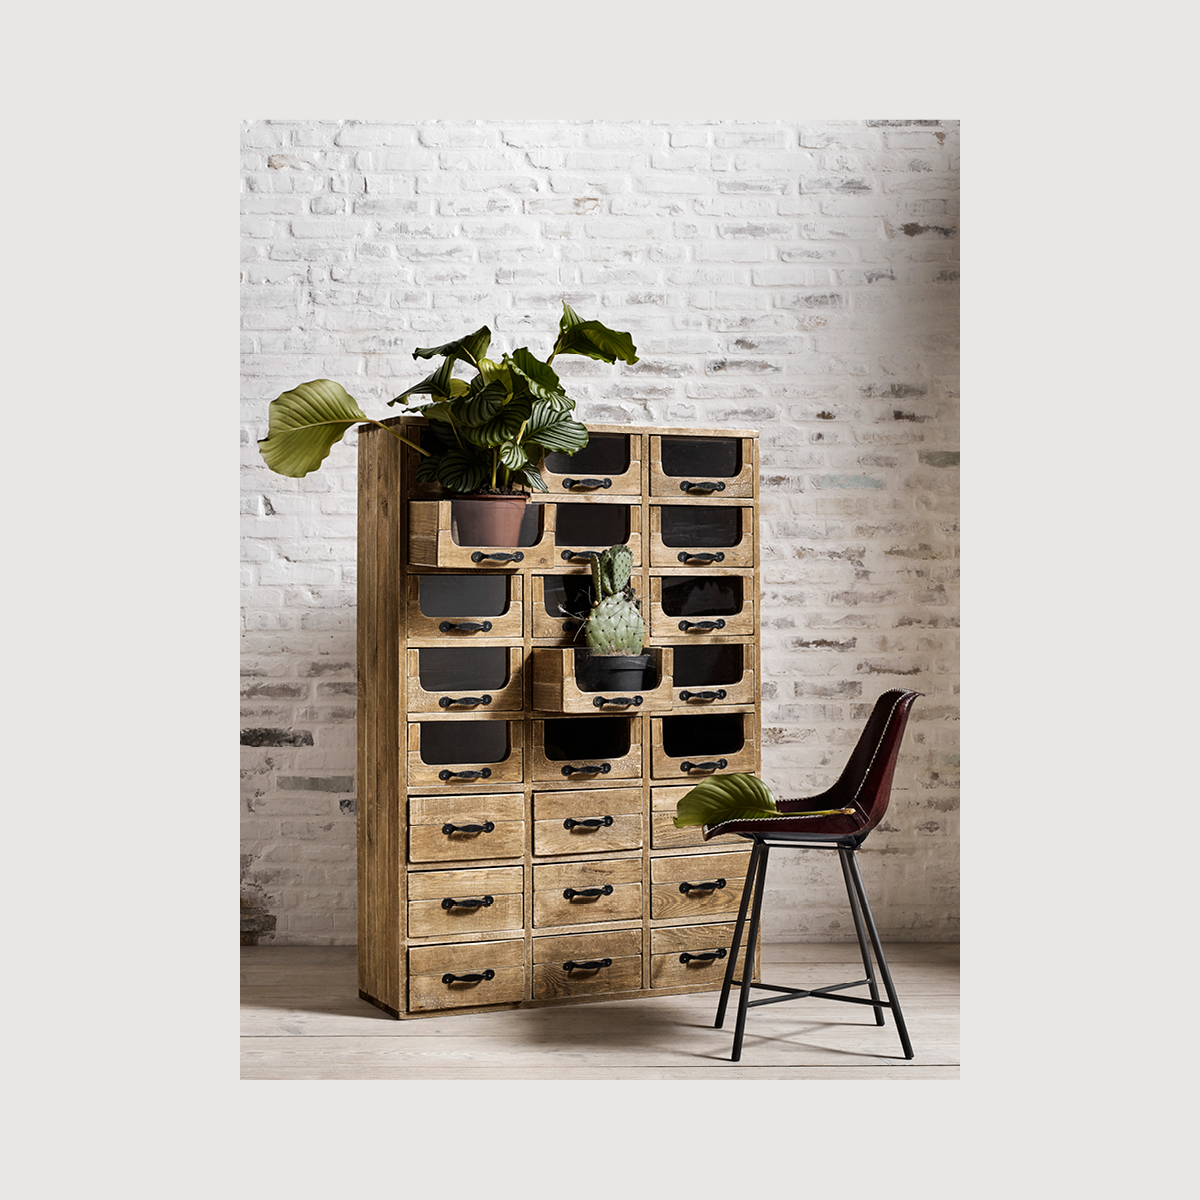 Pharmacy Cabinet with Drawers gallery image